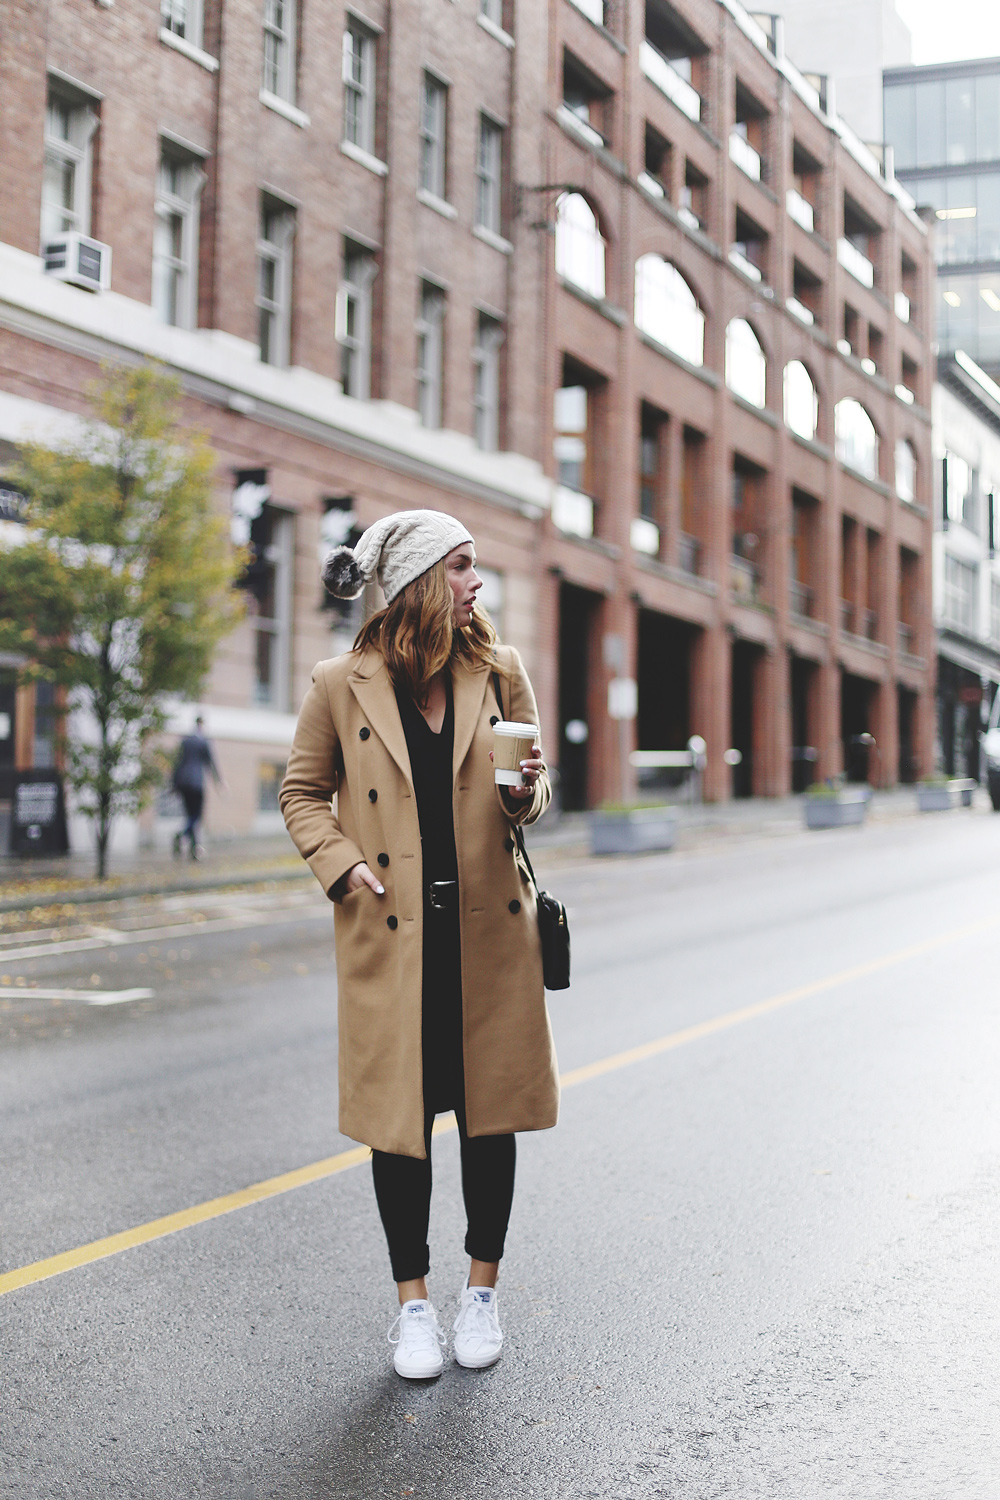 To Vogue or Bust shares ways to style your converse sneakers in white Converse All Stars, Aritzia camel coat, James Jeans black skinny jeans, Aritzia black leather bag and a Tilley Hats beanie